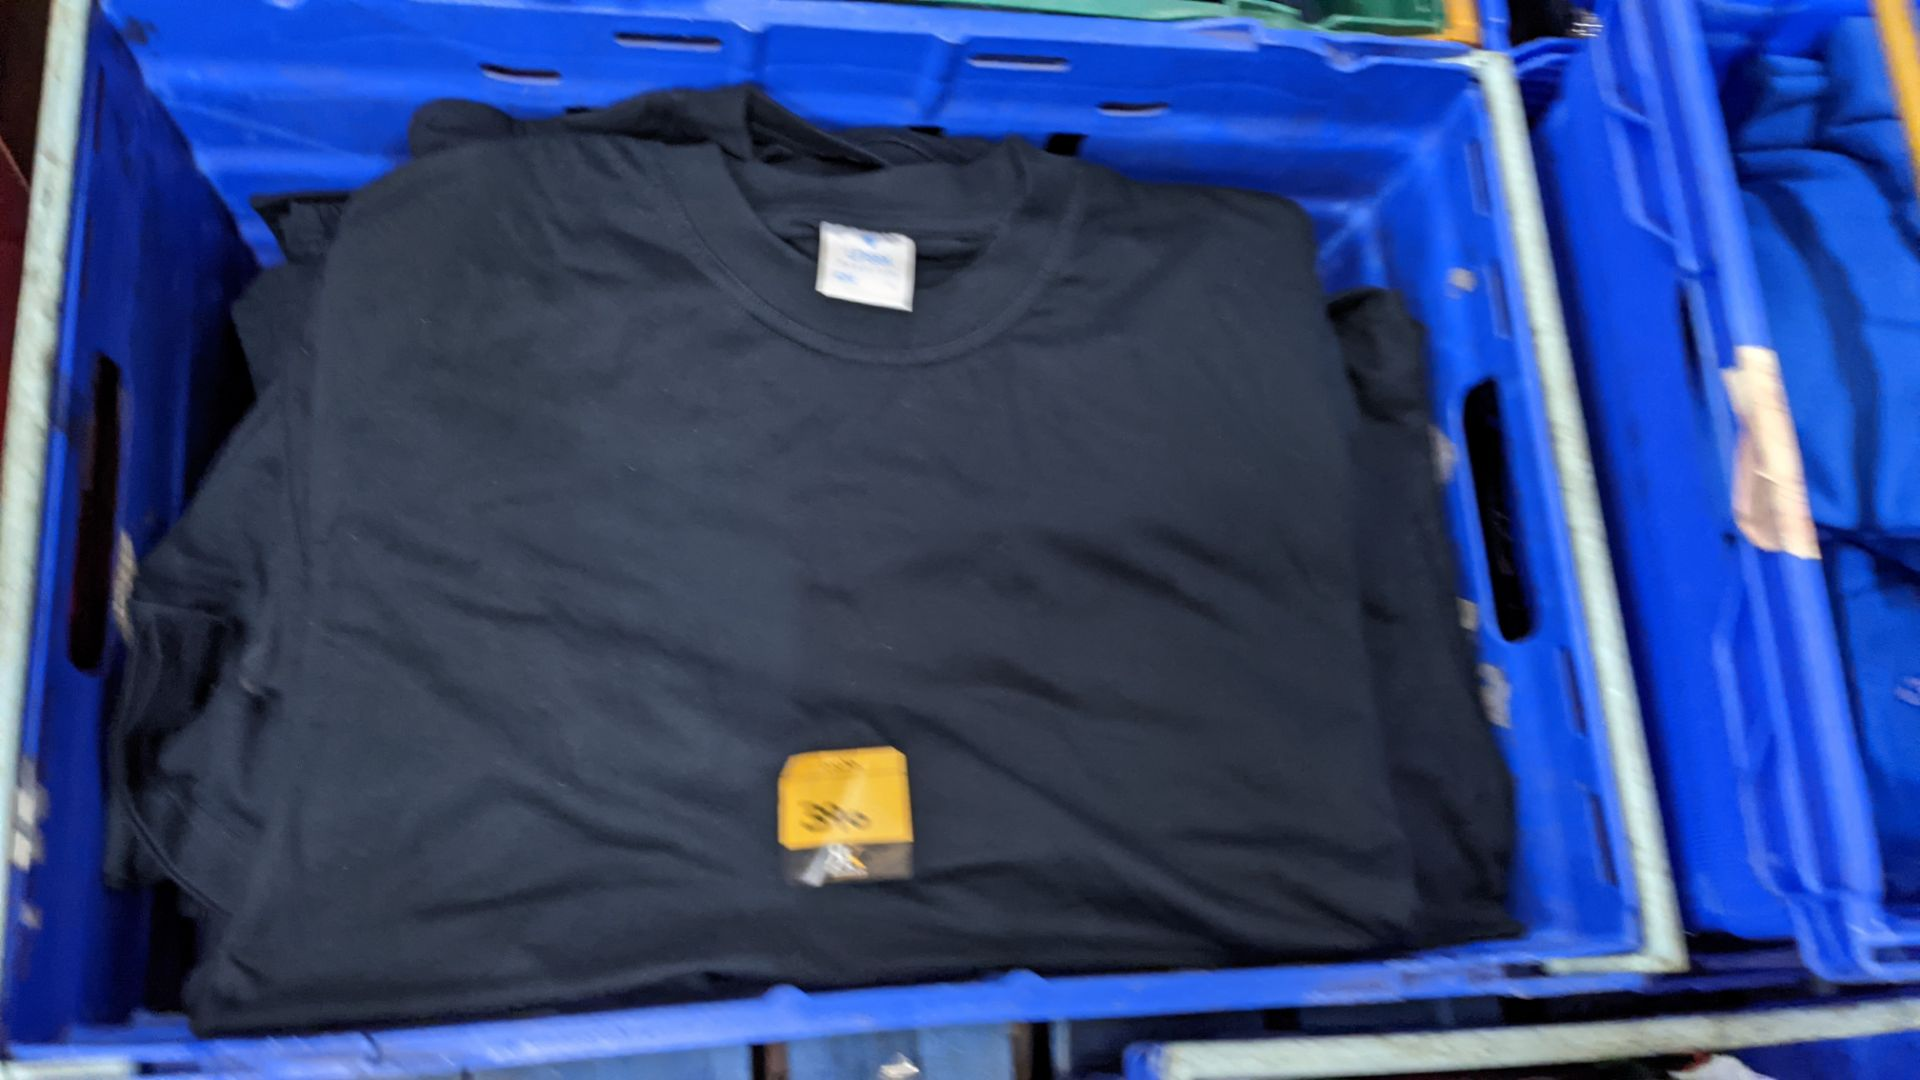 Approx 30 off black t-shirts by Uneek - Image 3 of 4